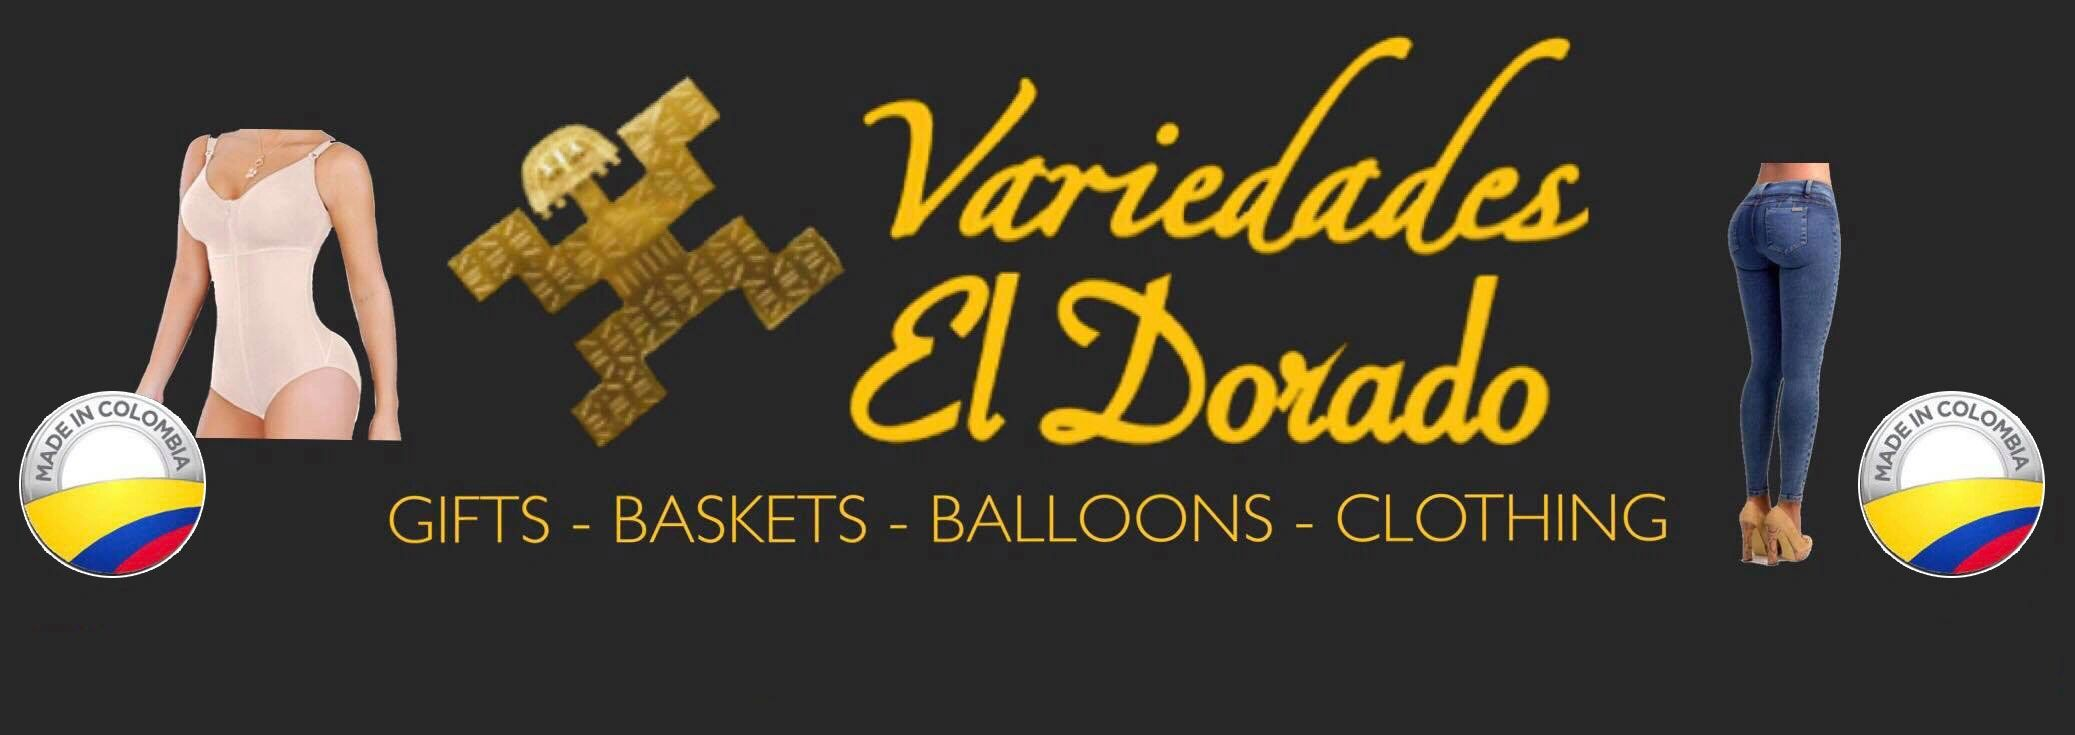 Variedades El Dorado. Clothing and shapewear from Colombia. Gift Baskets and party decorations.